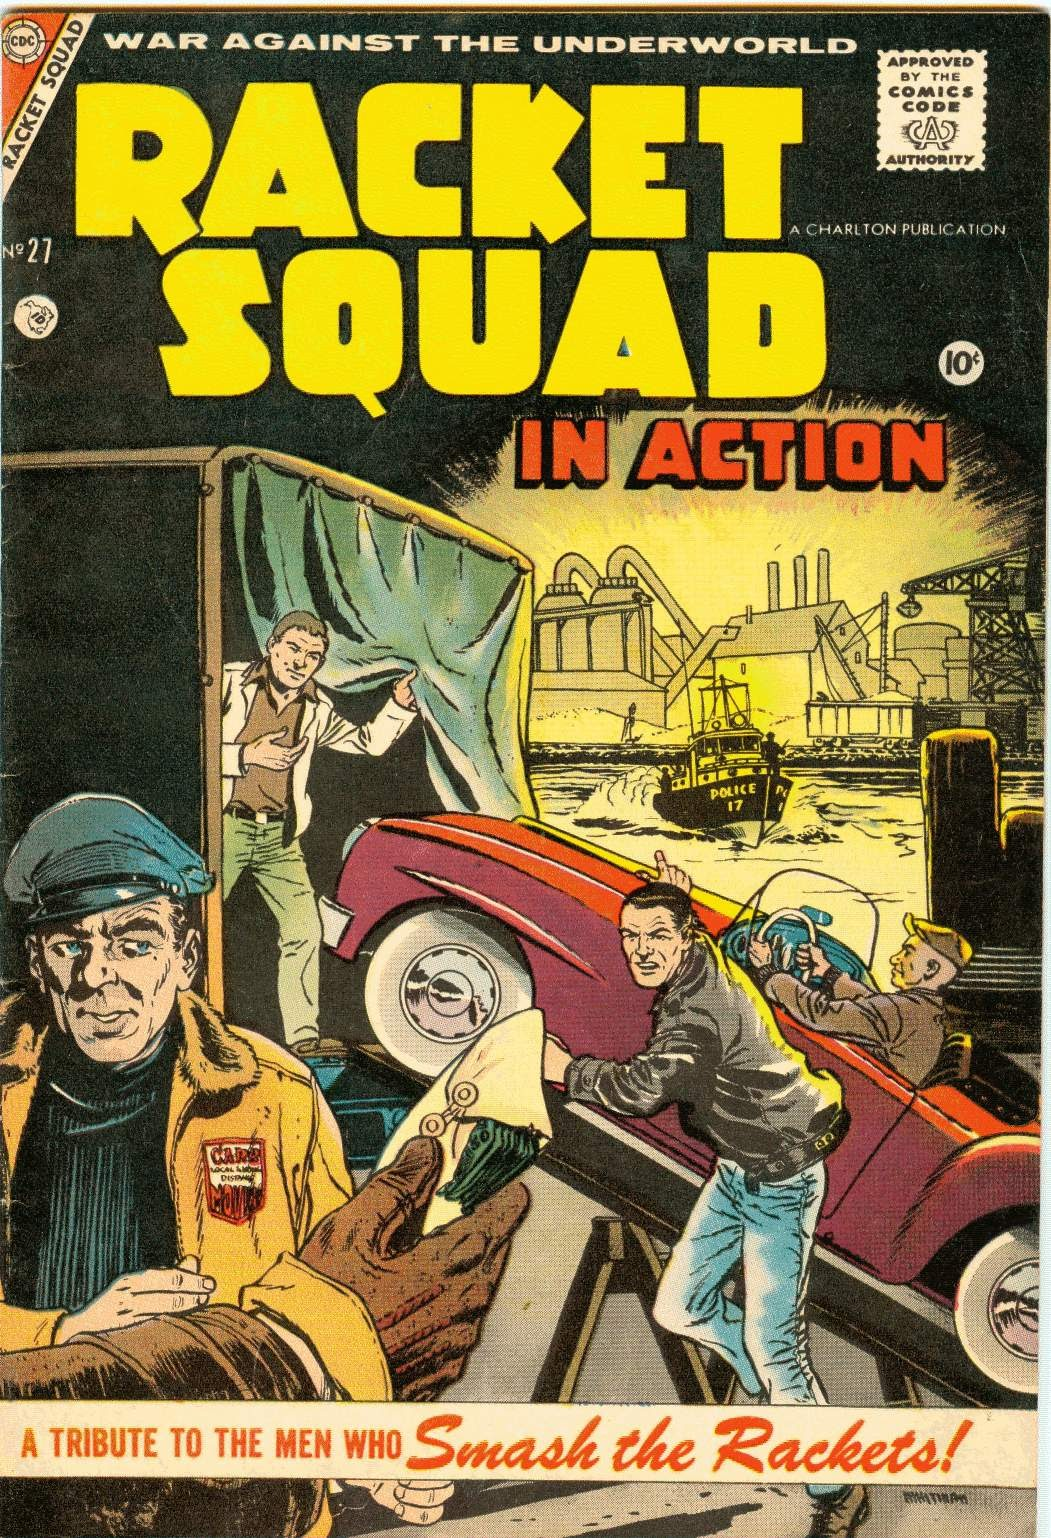 Read online Racket Squad in Action comic -  Issue #27 - 1